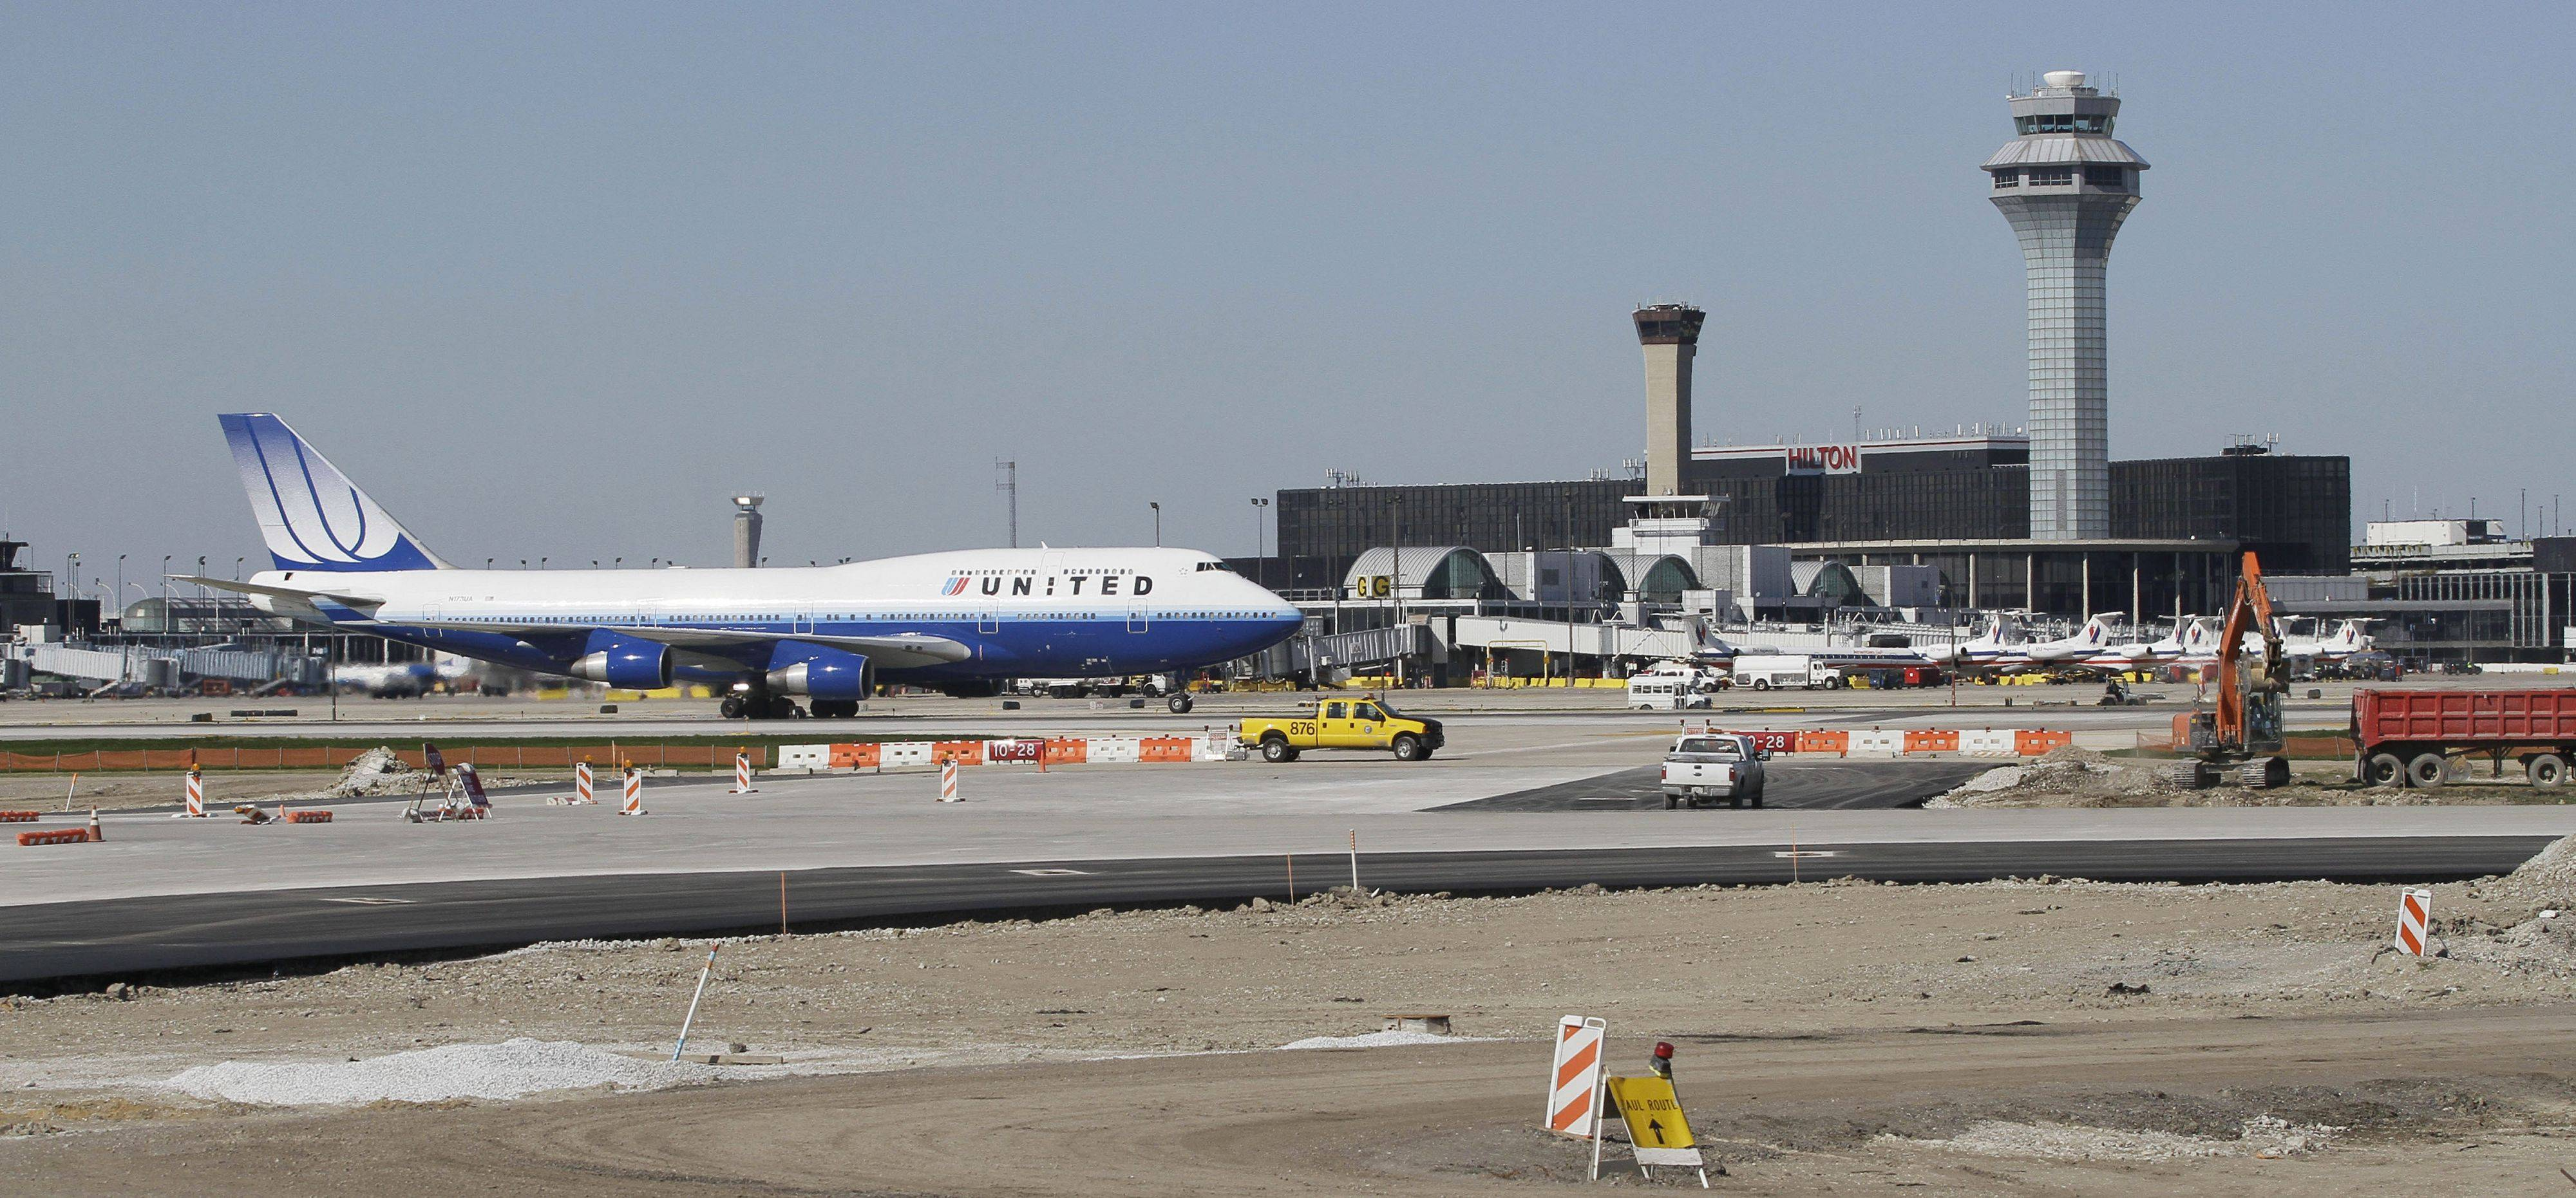 United and American airlines have reached a deal with the city of Chicago and federal authorities to build a new runway at O'Hare International Airport.